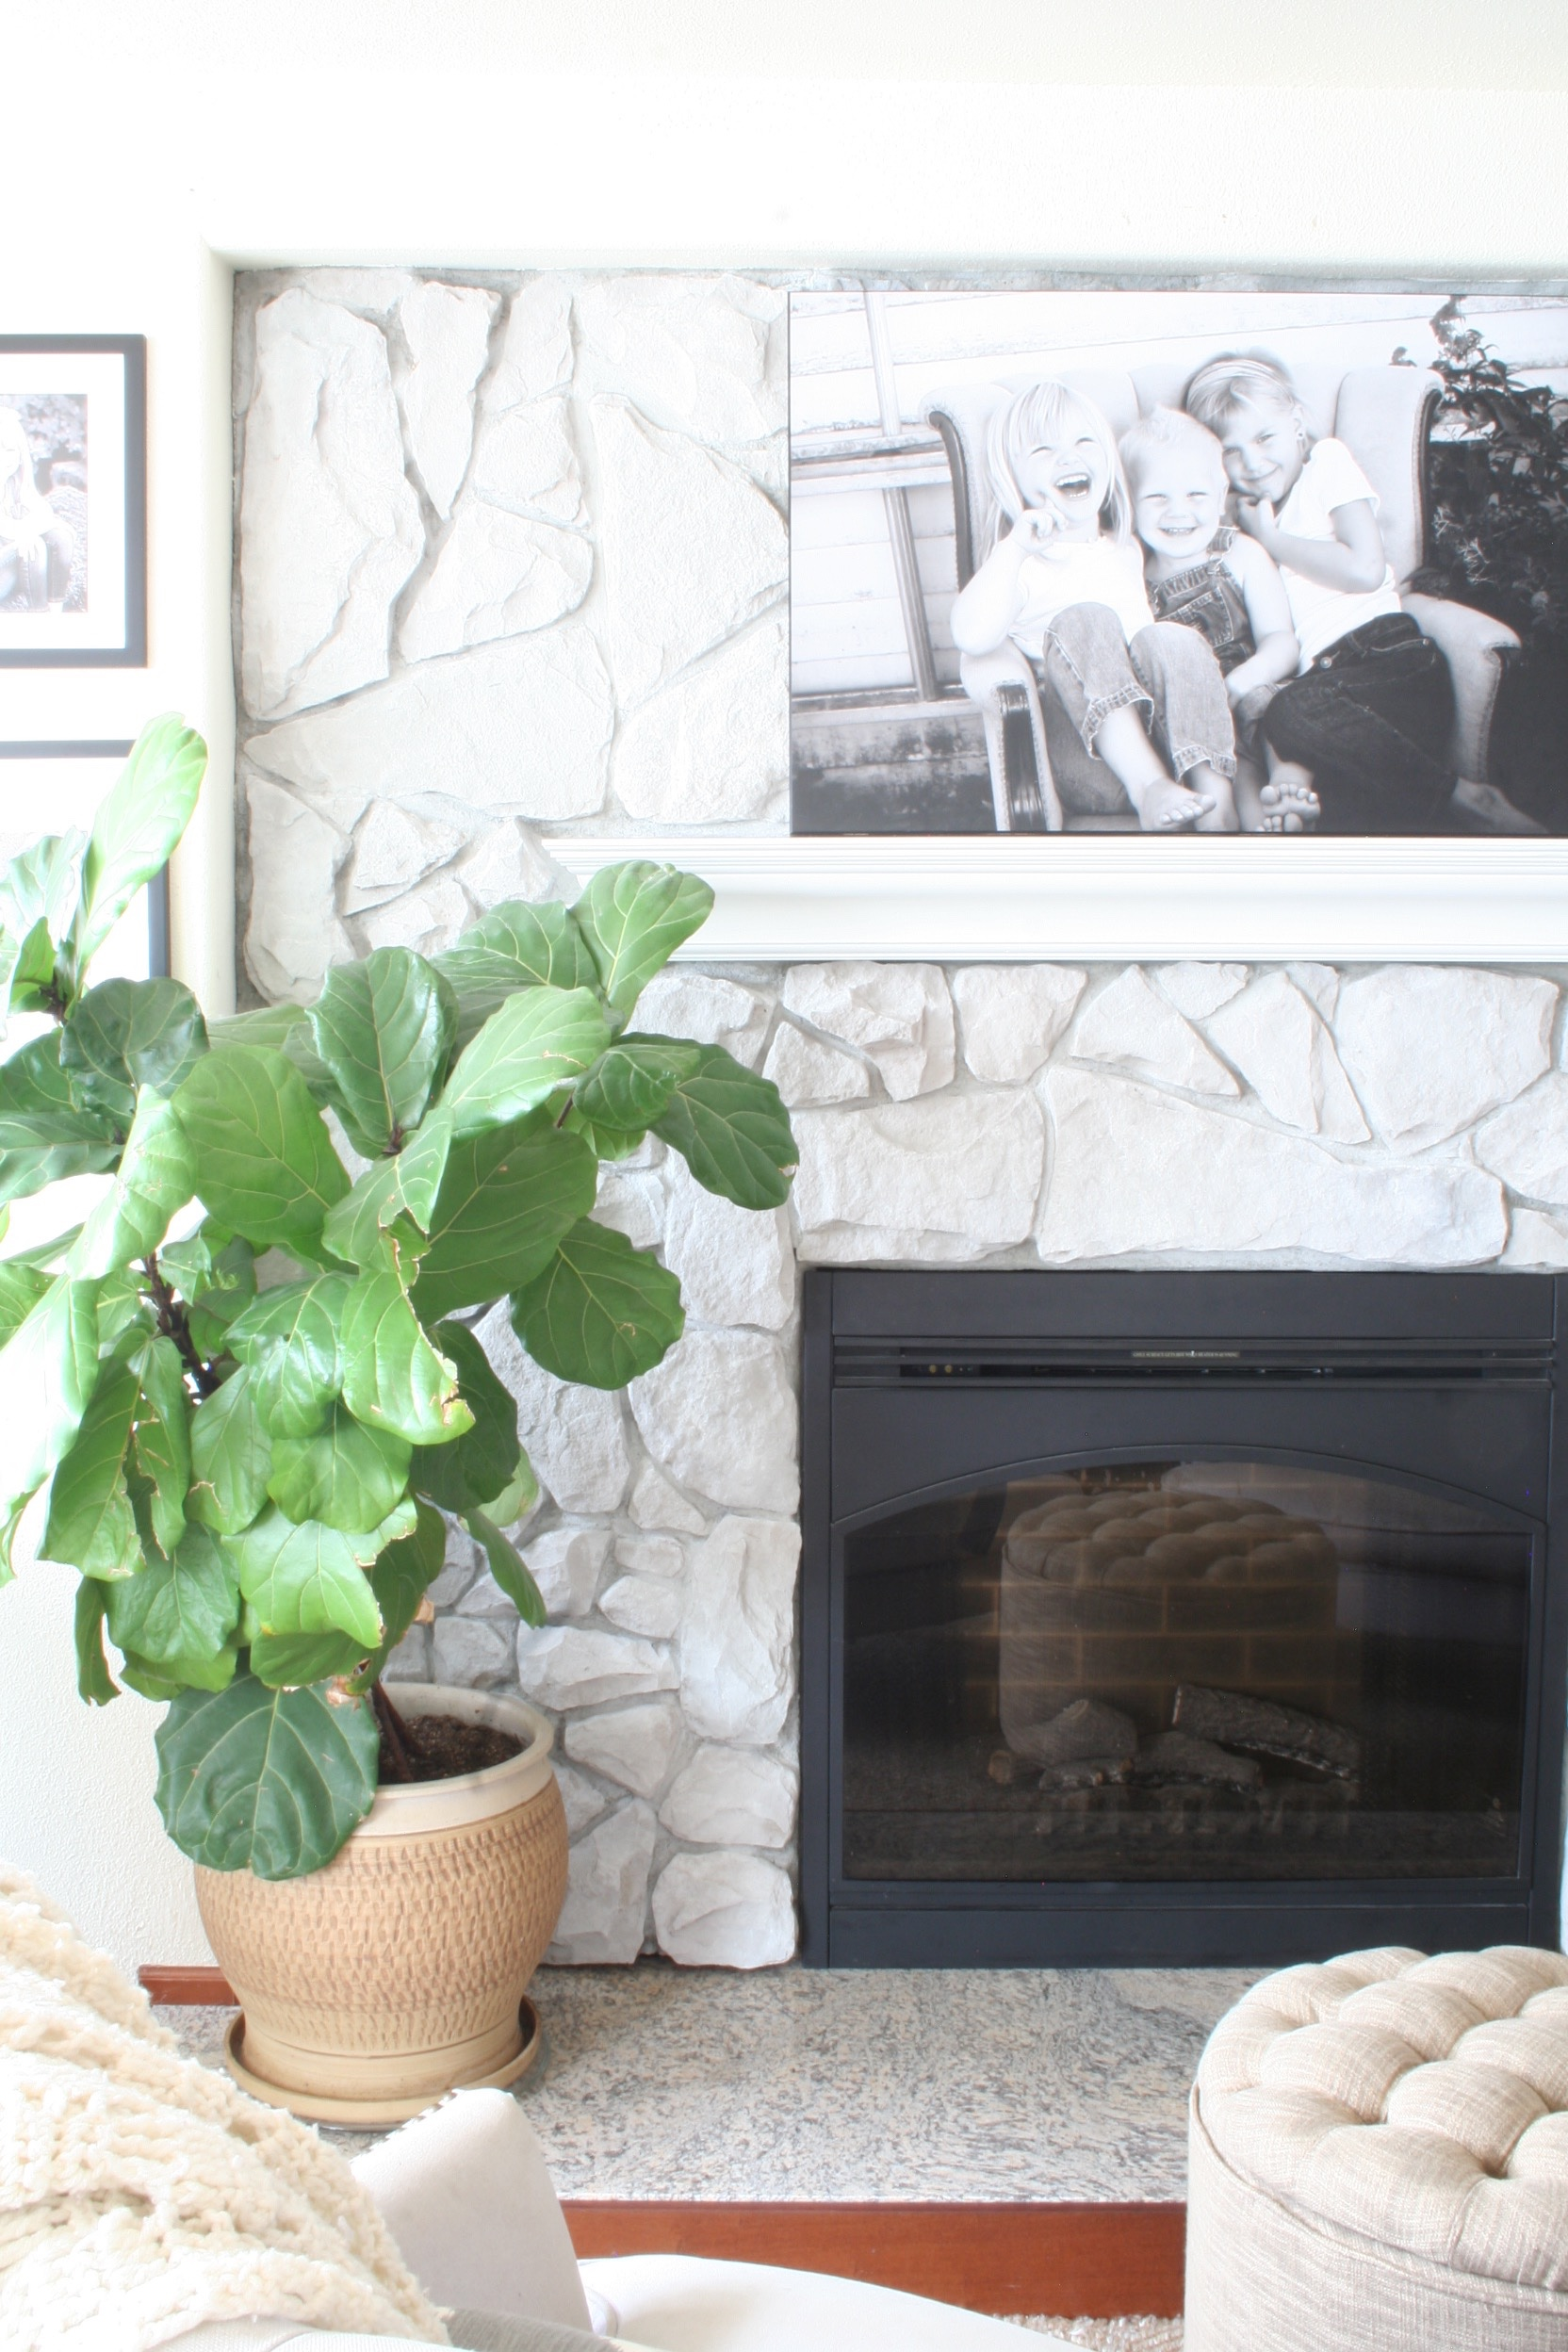 DIY Fireplace Makeover - How To Whitewash Stone